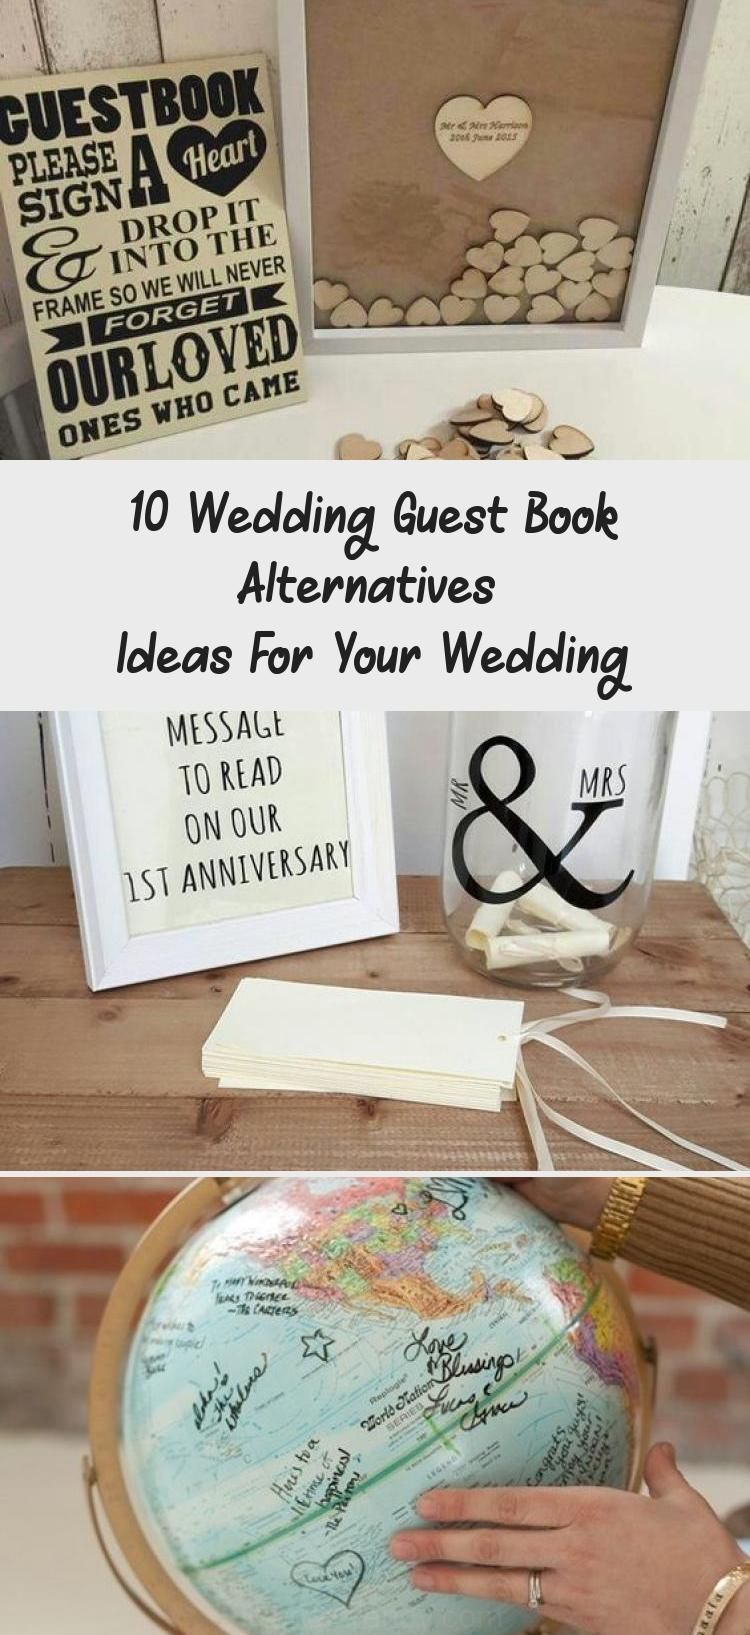 Lista Anniversari Matrimonio.10 Wedding Guest Book Alternative Idee Per Il Vostro Matrimonio